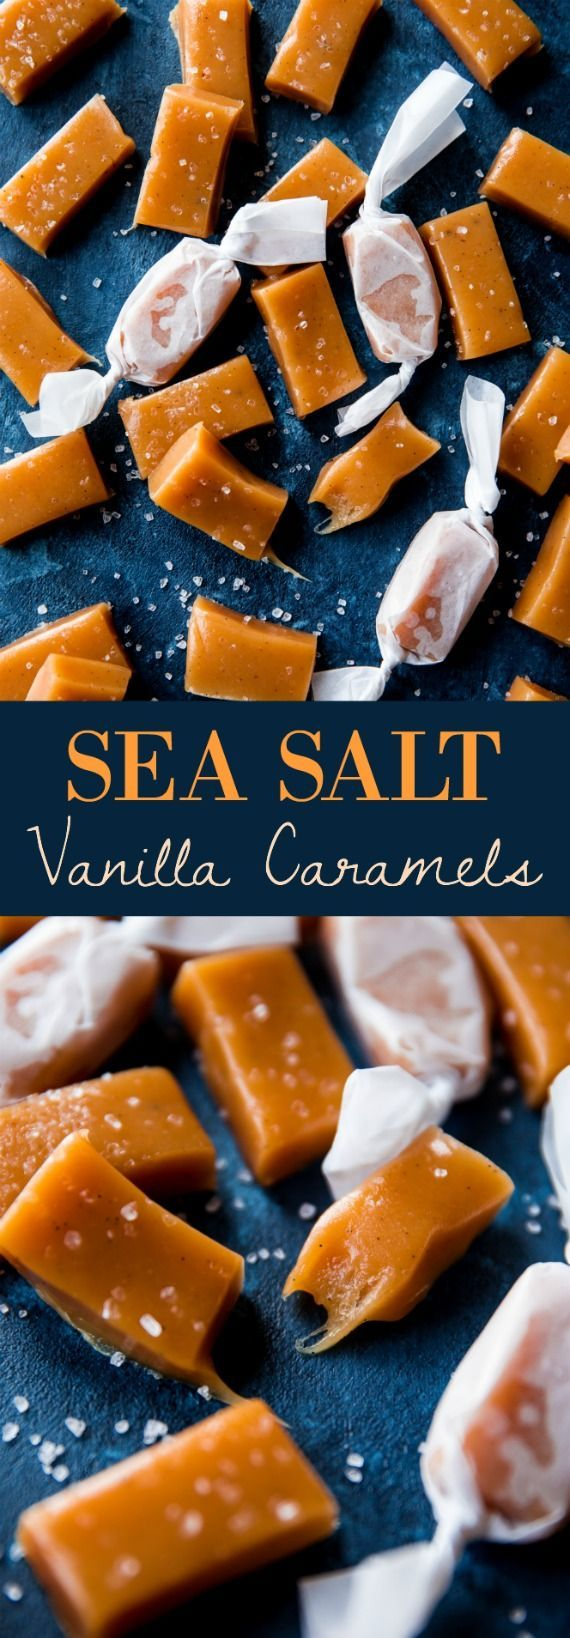 These sea salt vanilla caramels are unbelievably soft and chewy; the ultimate sweet and salty candy treat. The recipe makes a big batch to share!